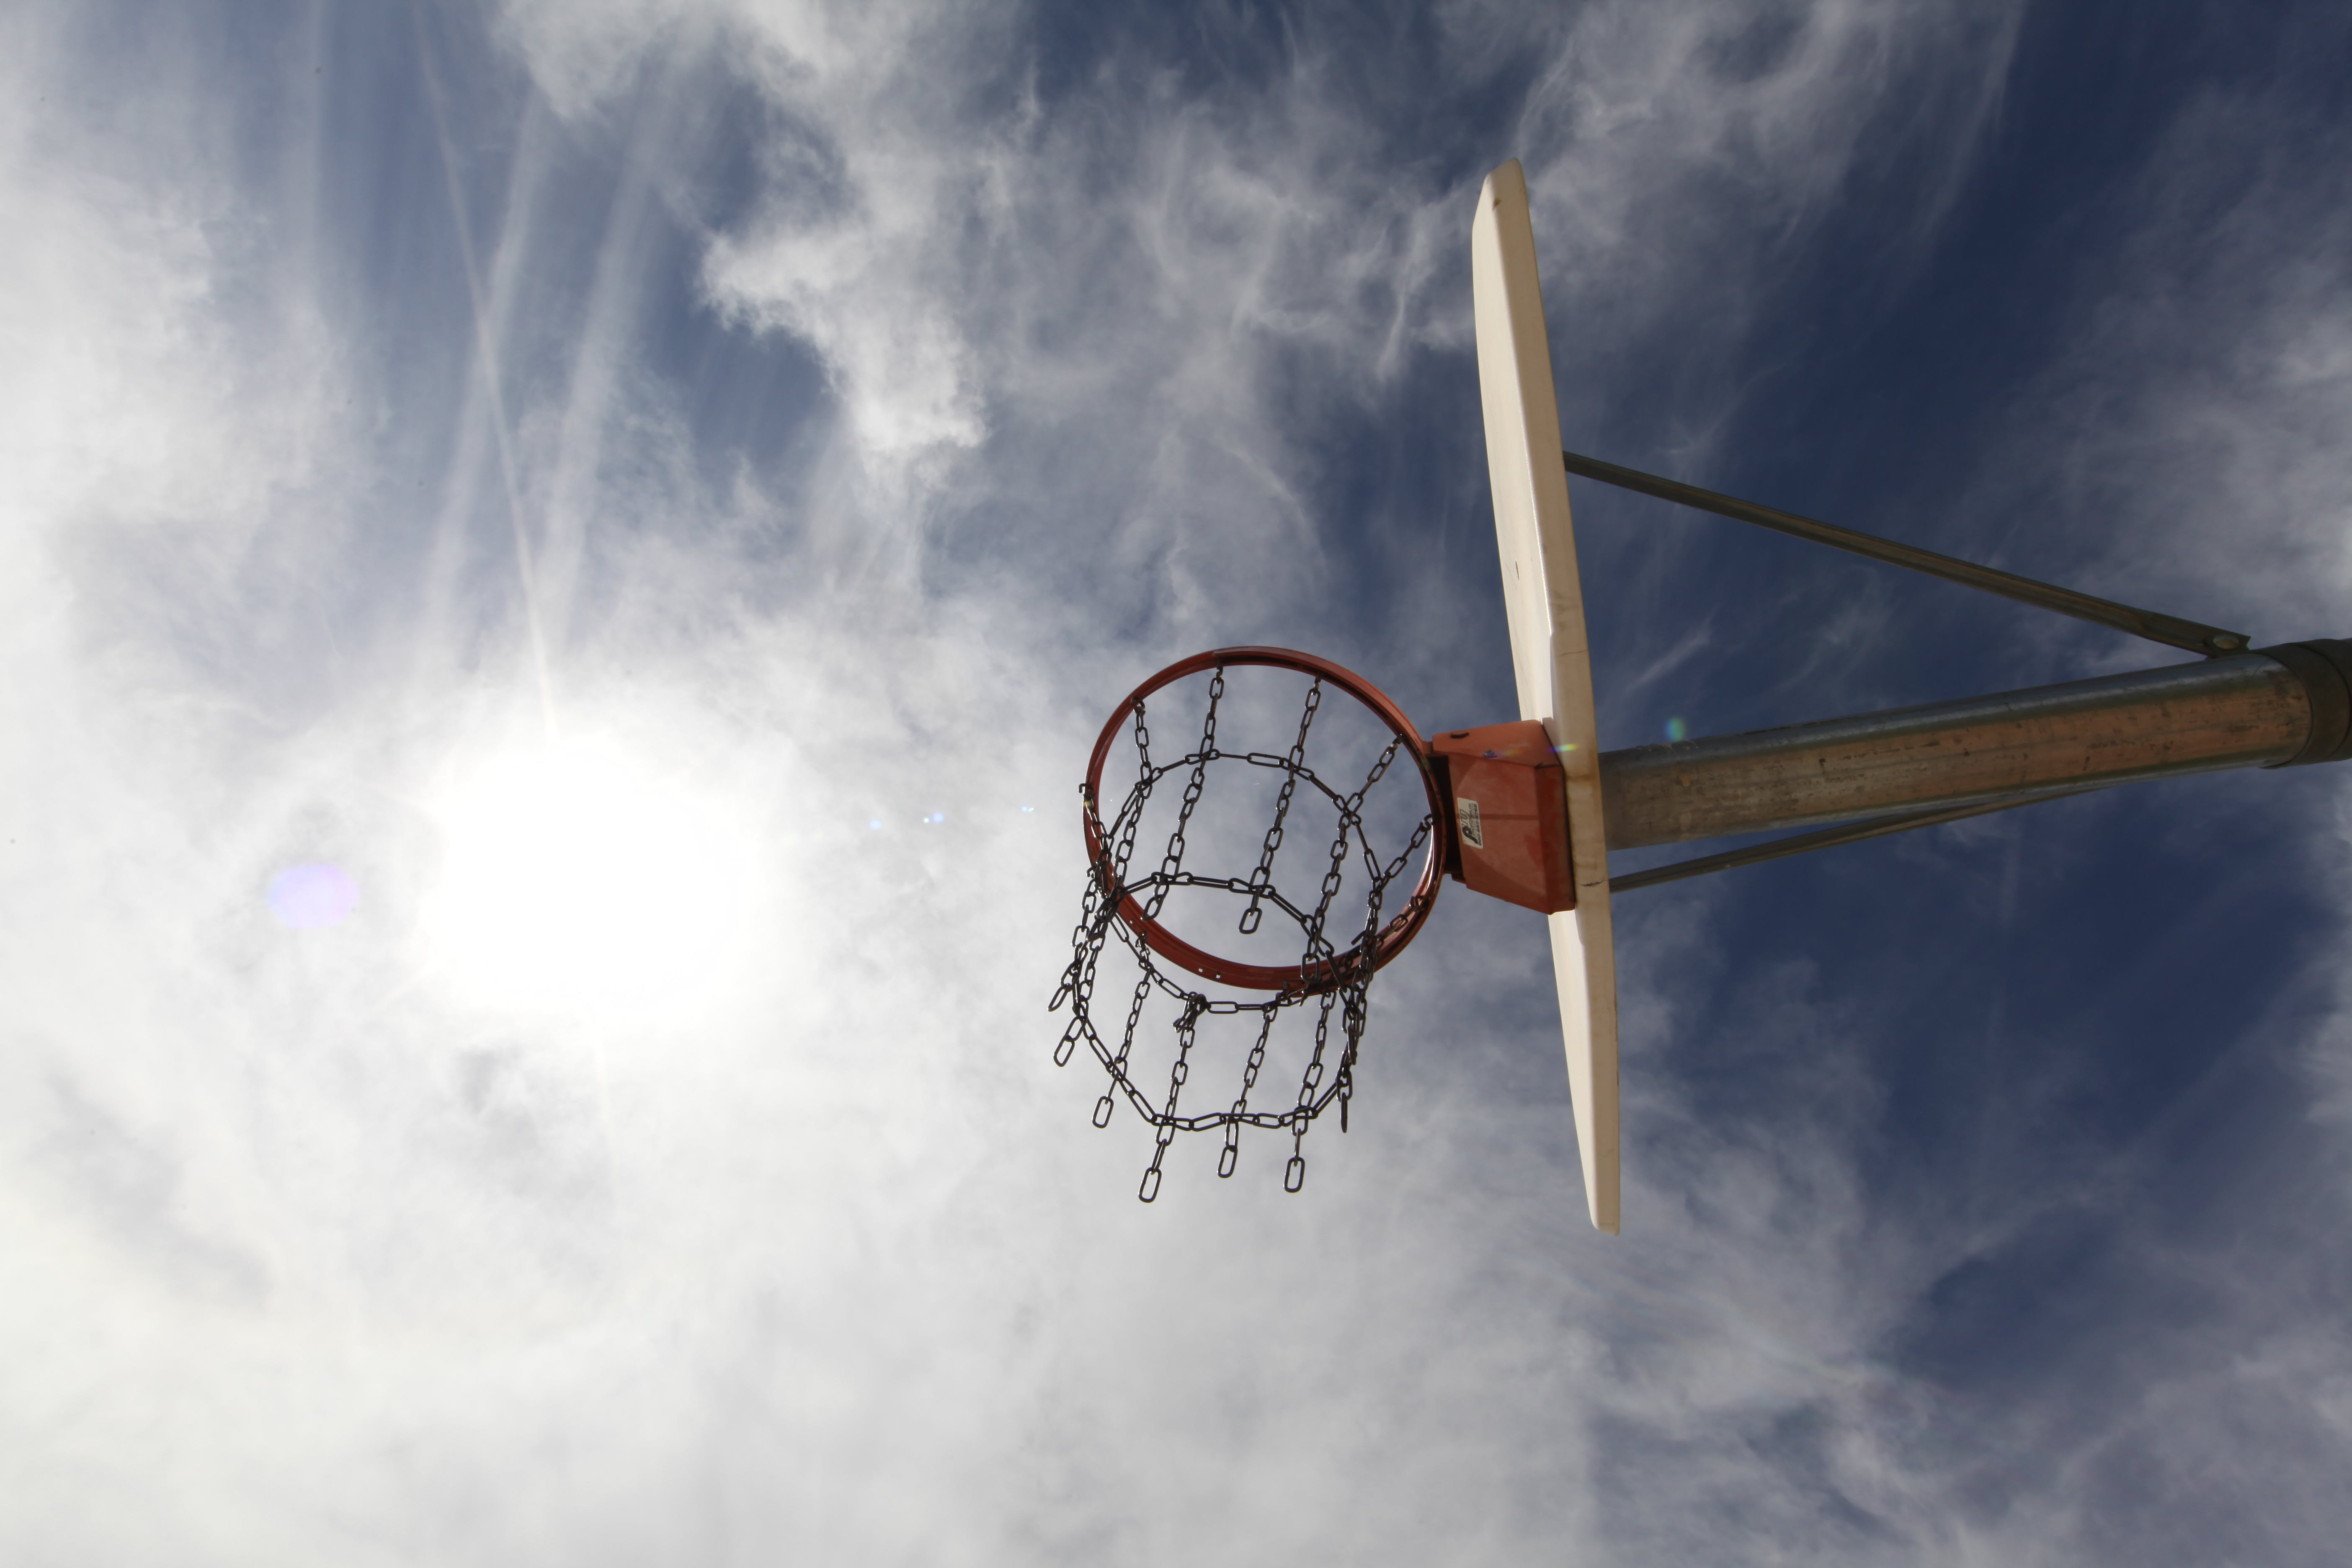 Low-angle Photography of Red and White Basketball System